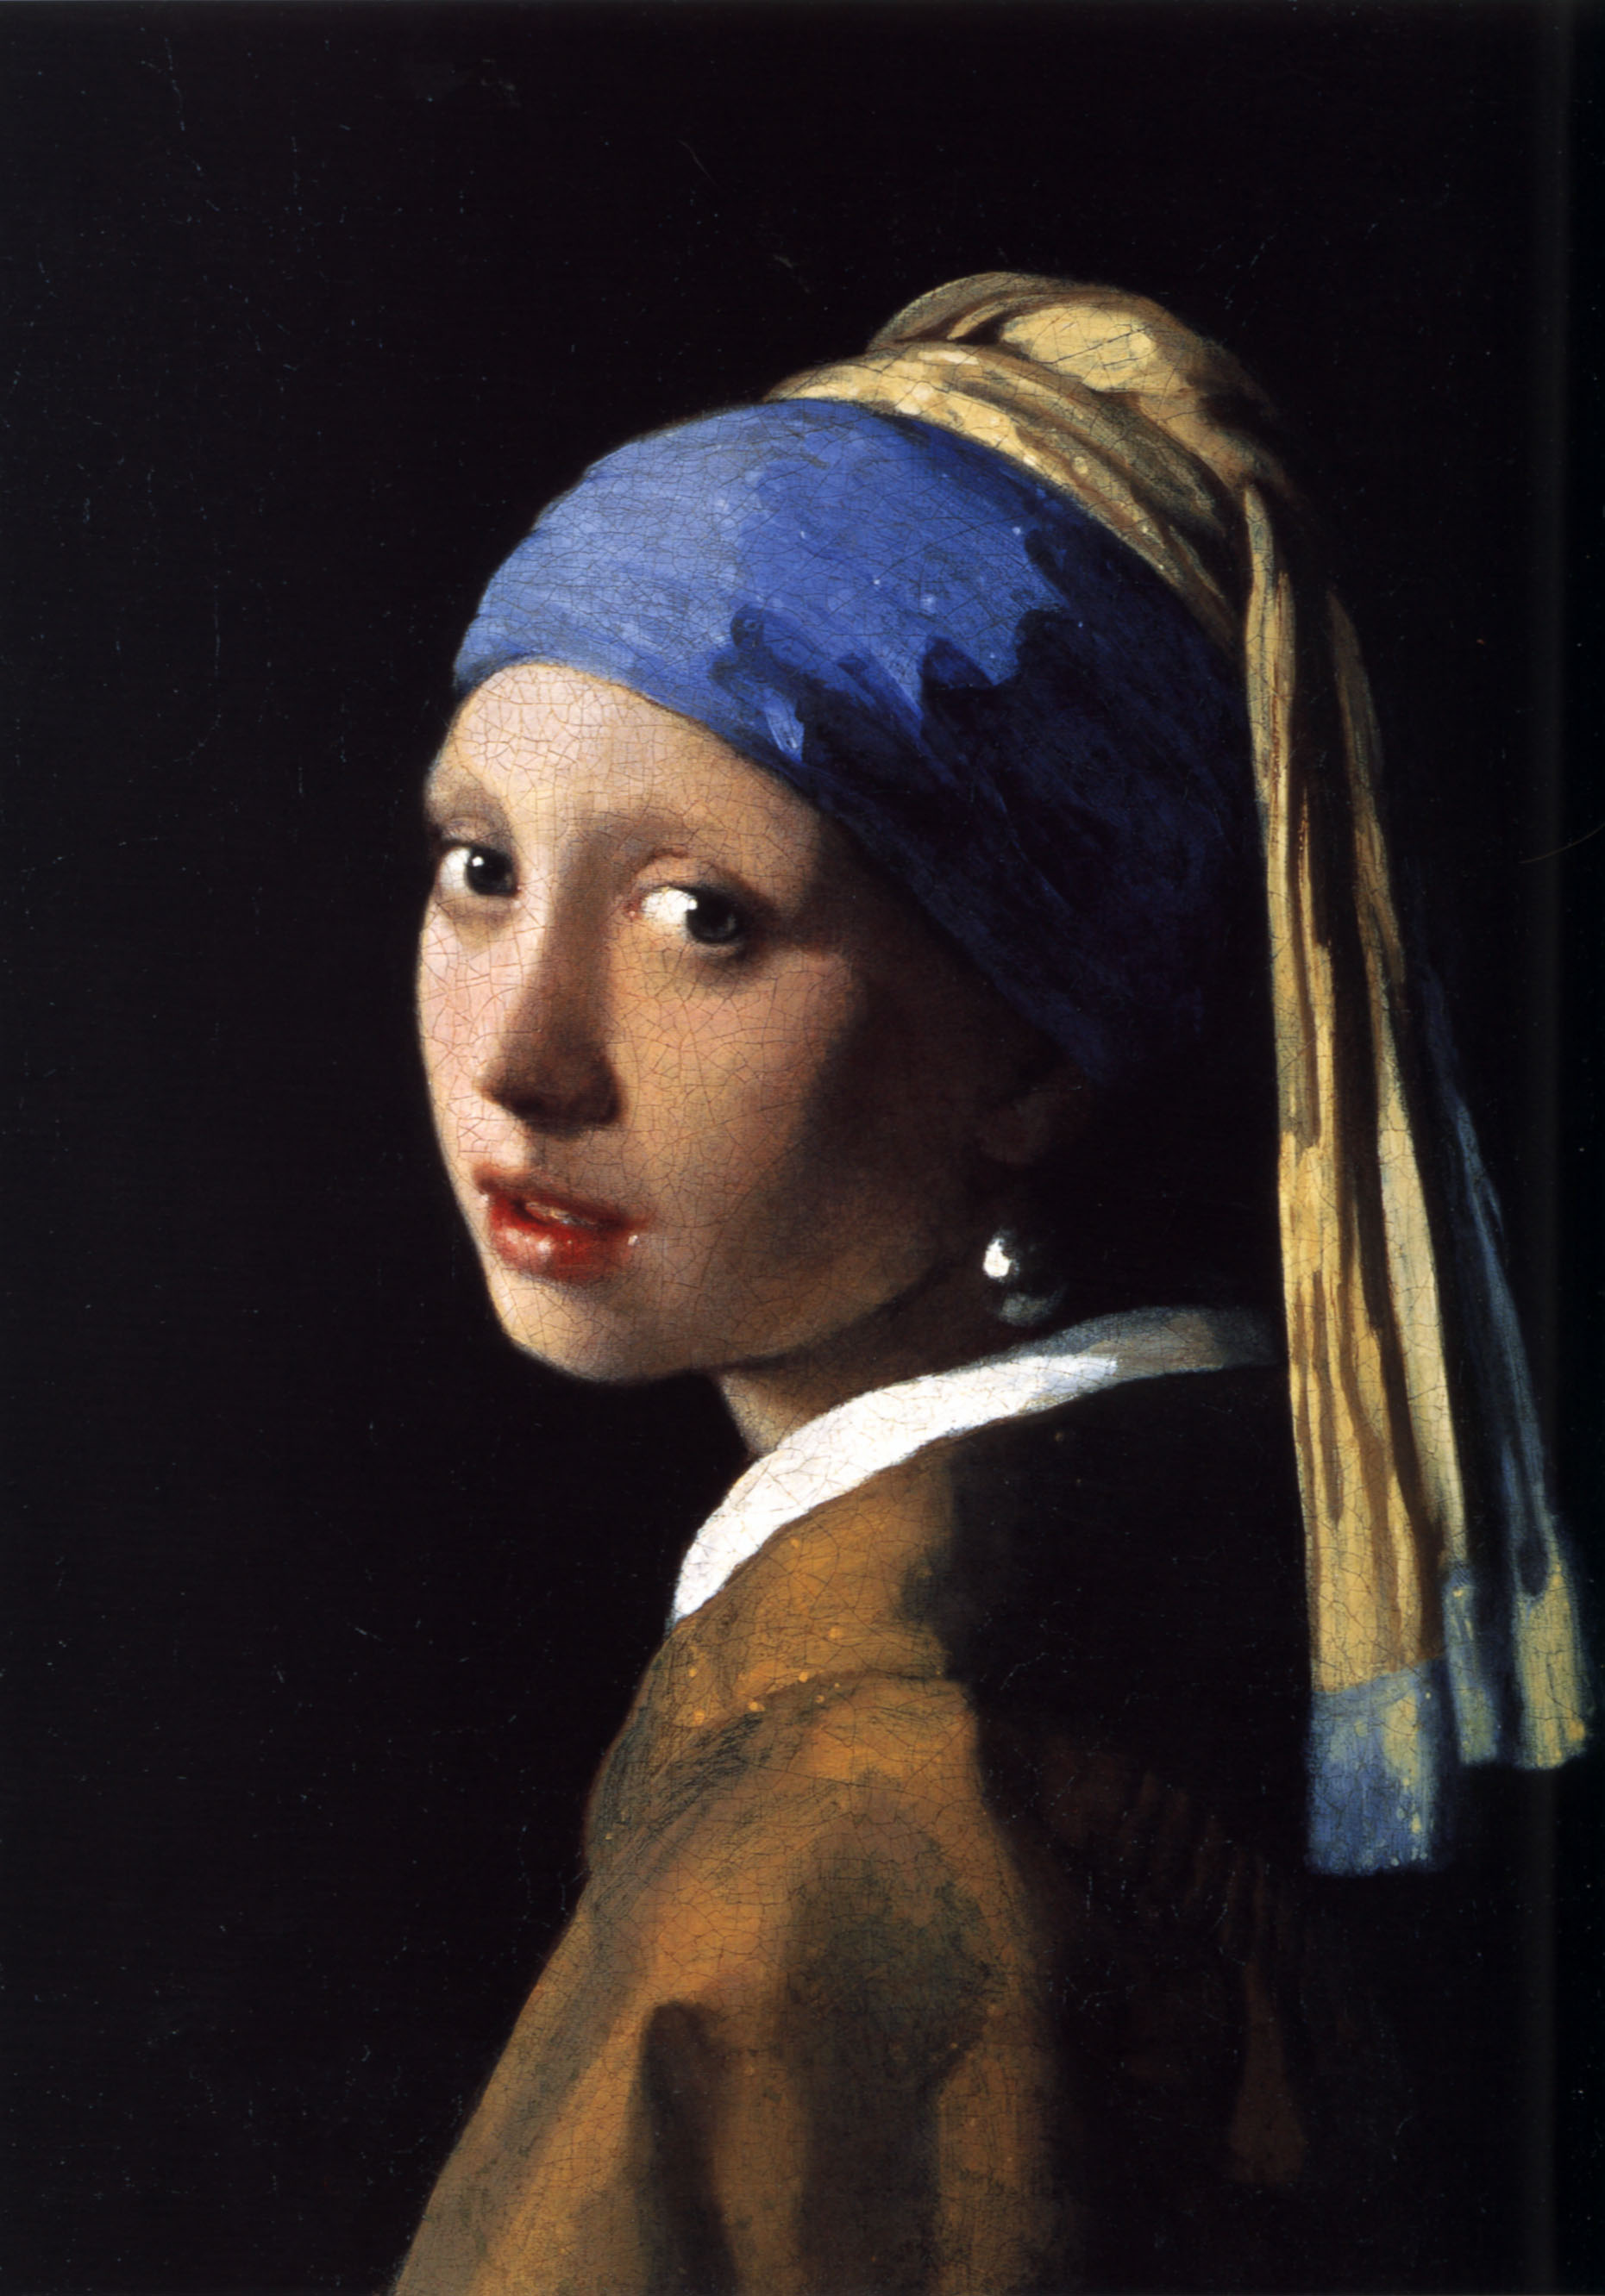 Johannes Vermeer (1632-1675) - The Girl With The Pearl Earring (1665).jpg